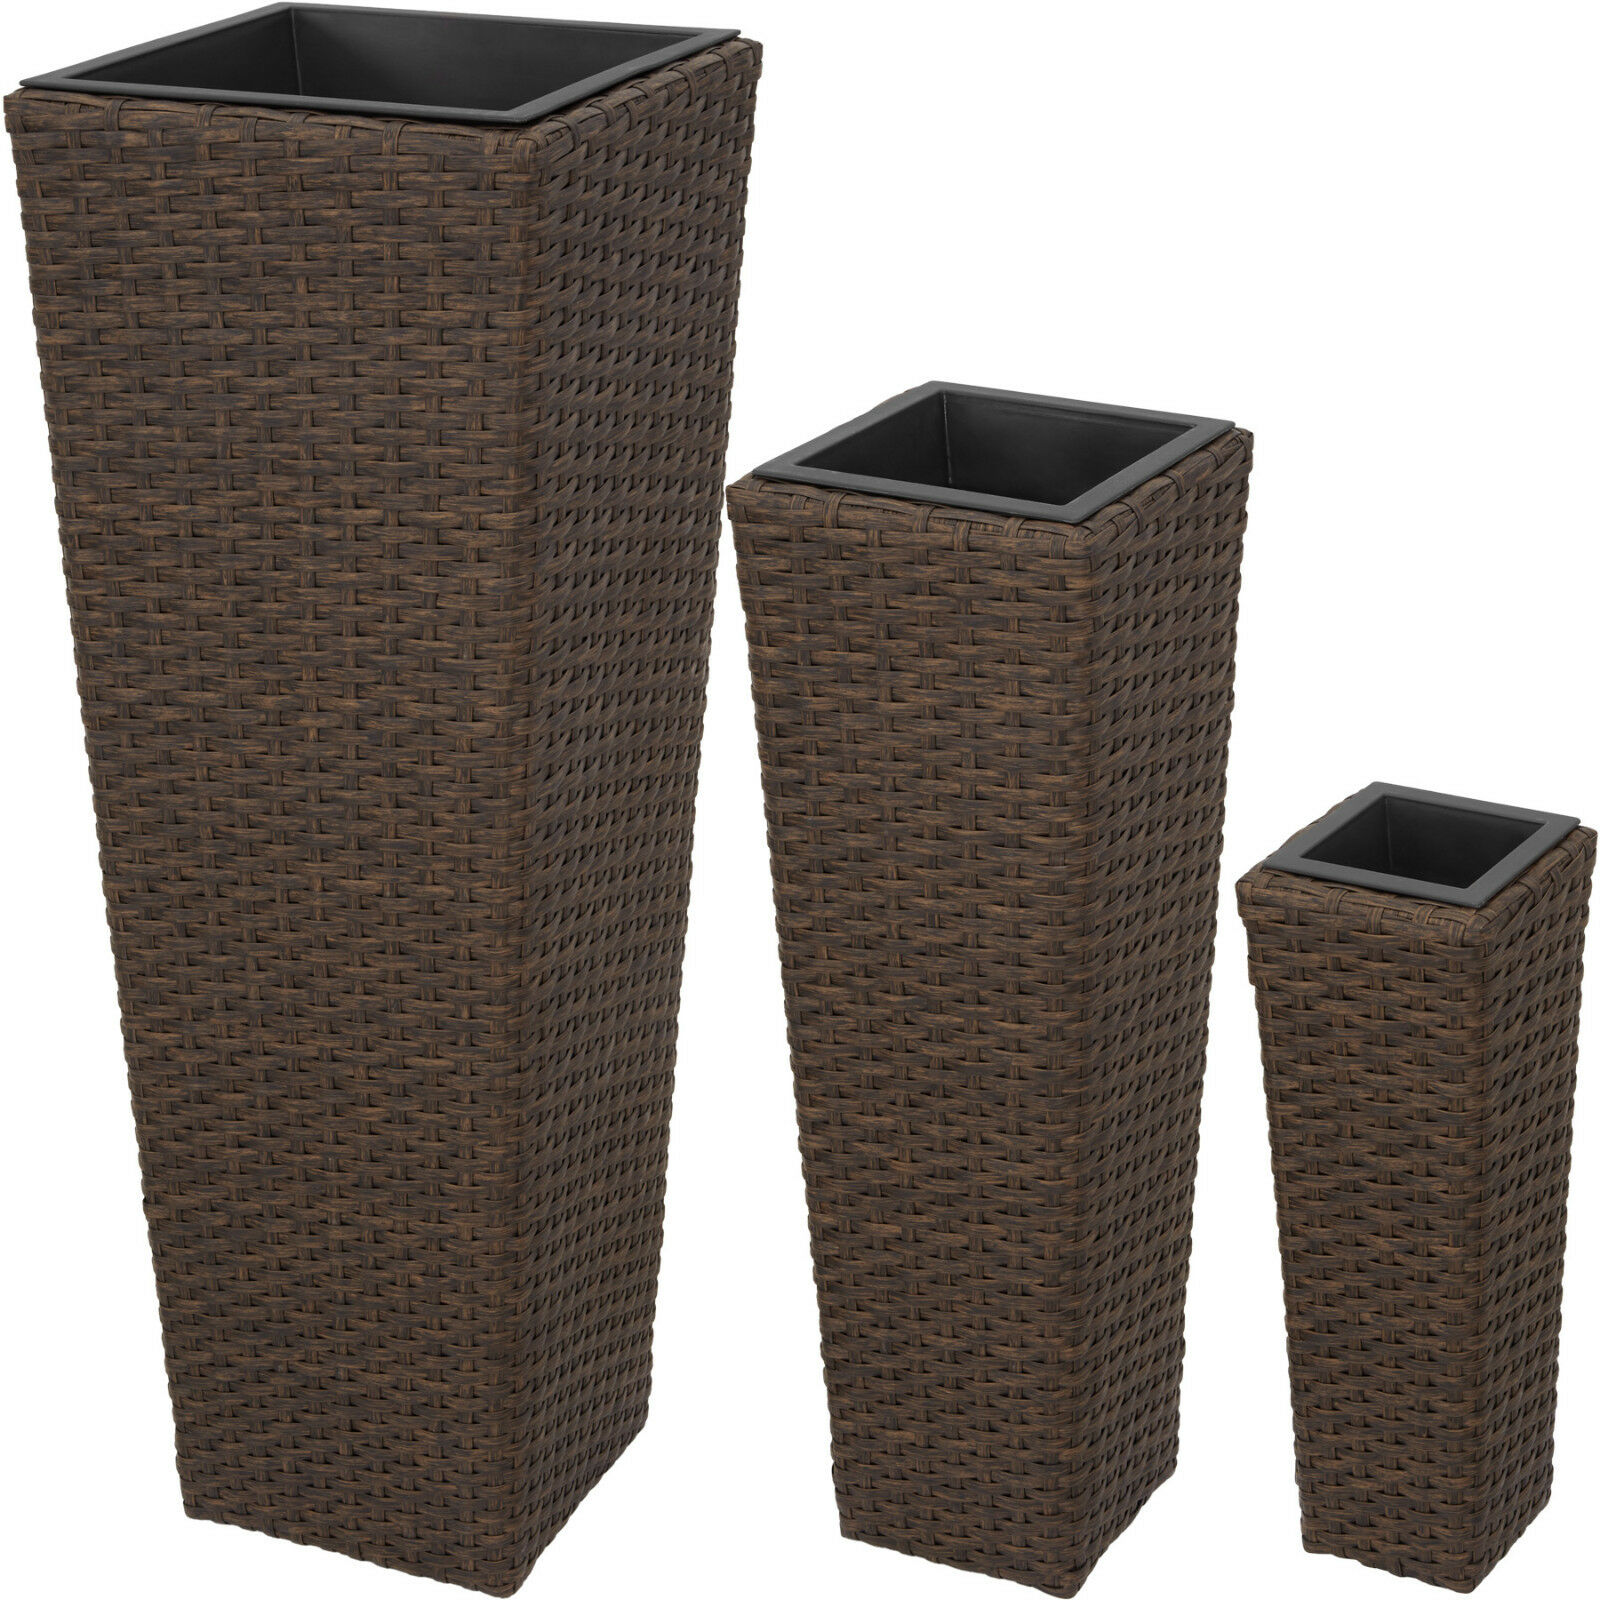 3 x Flower pot set rattan style tube planter plant polyrattan vase antique